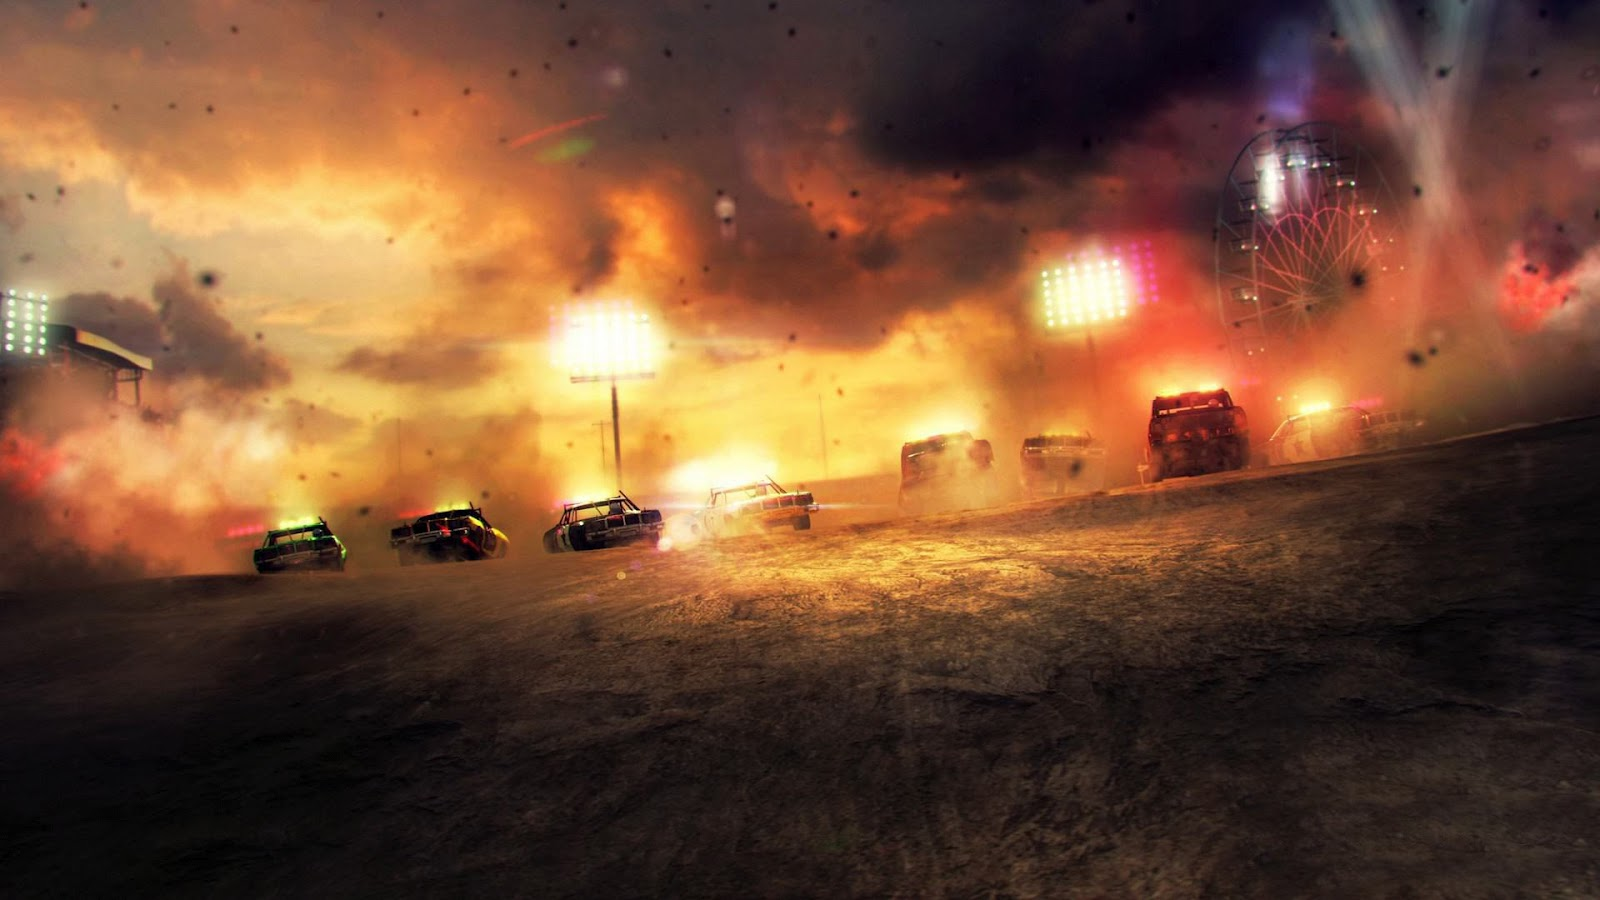 http://1.bp.blogspot.com/-O7T2yO06Ajw/UBXTSEYjQNI/AAAAAAAAFpA/9XByZACYDBY/s1600/dirt-showdown-all-cars-1920x1080.jpg